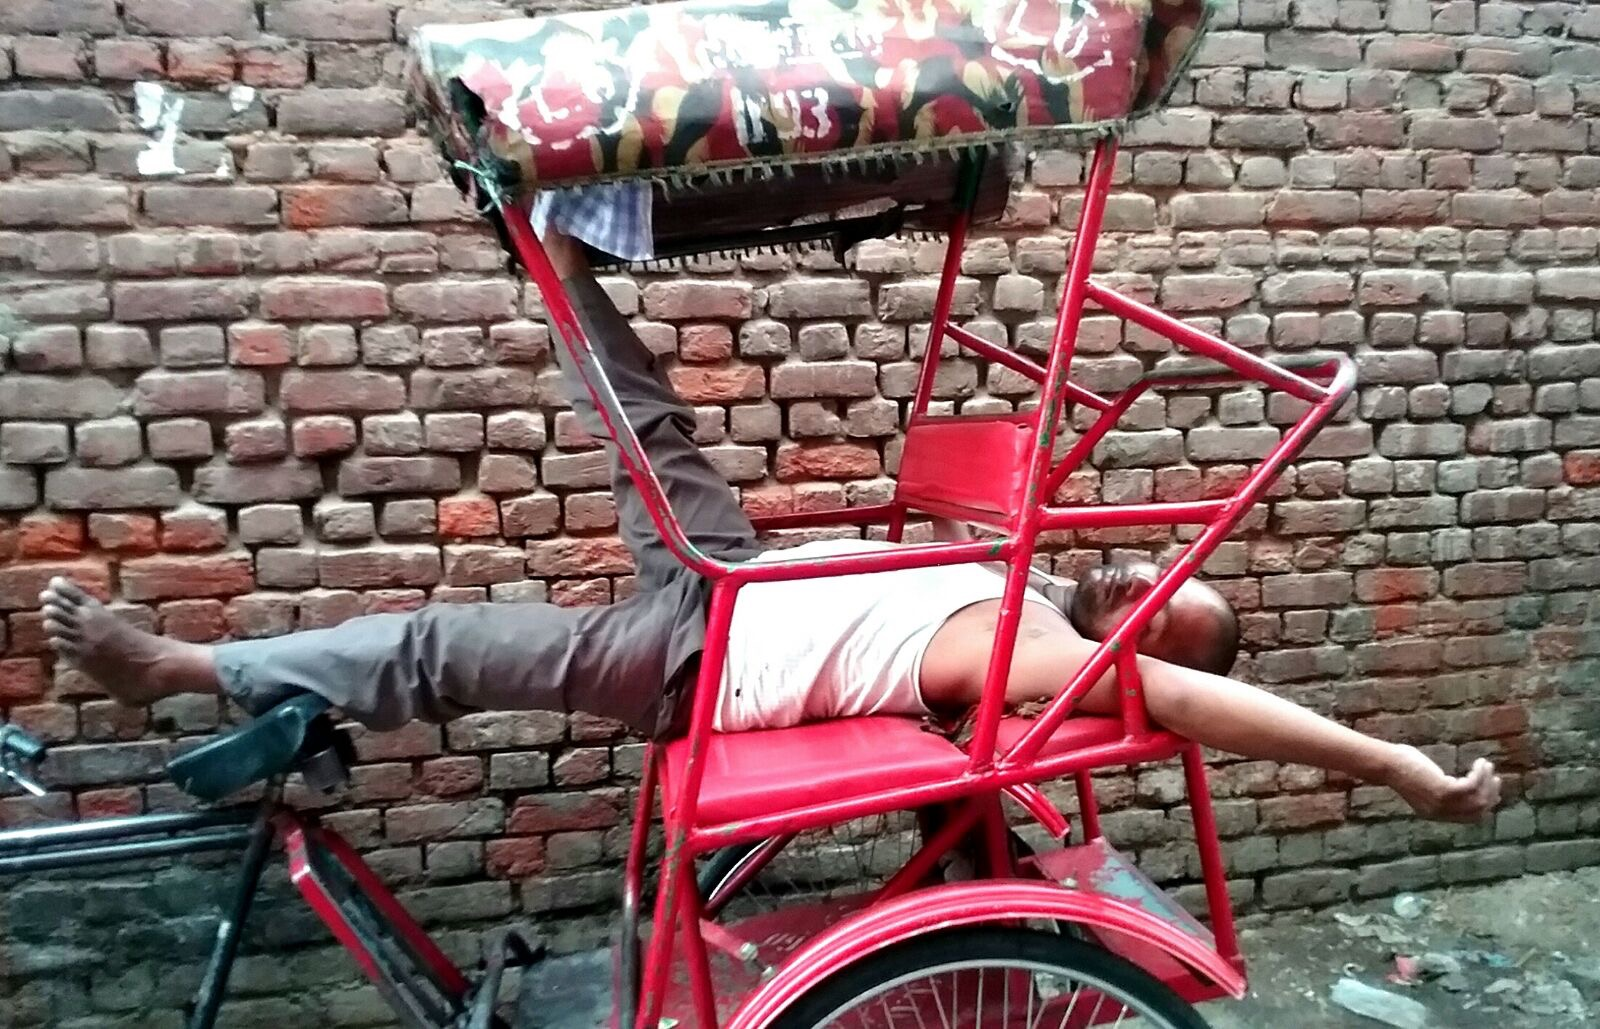 Man taking a nap on bicycle cart, Makaibari - Morning puja (blessings)